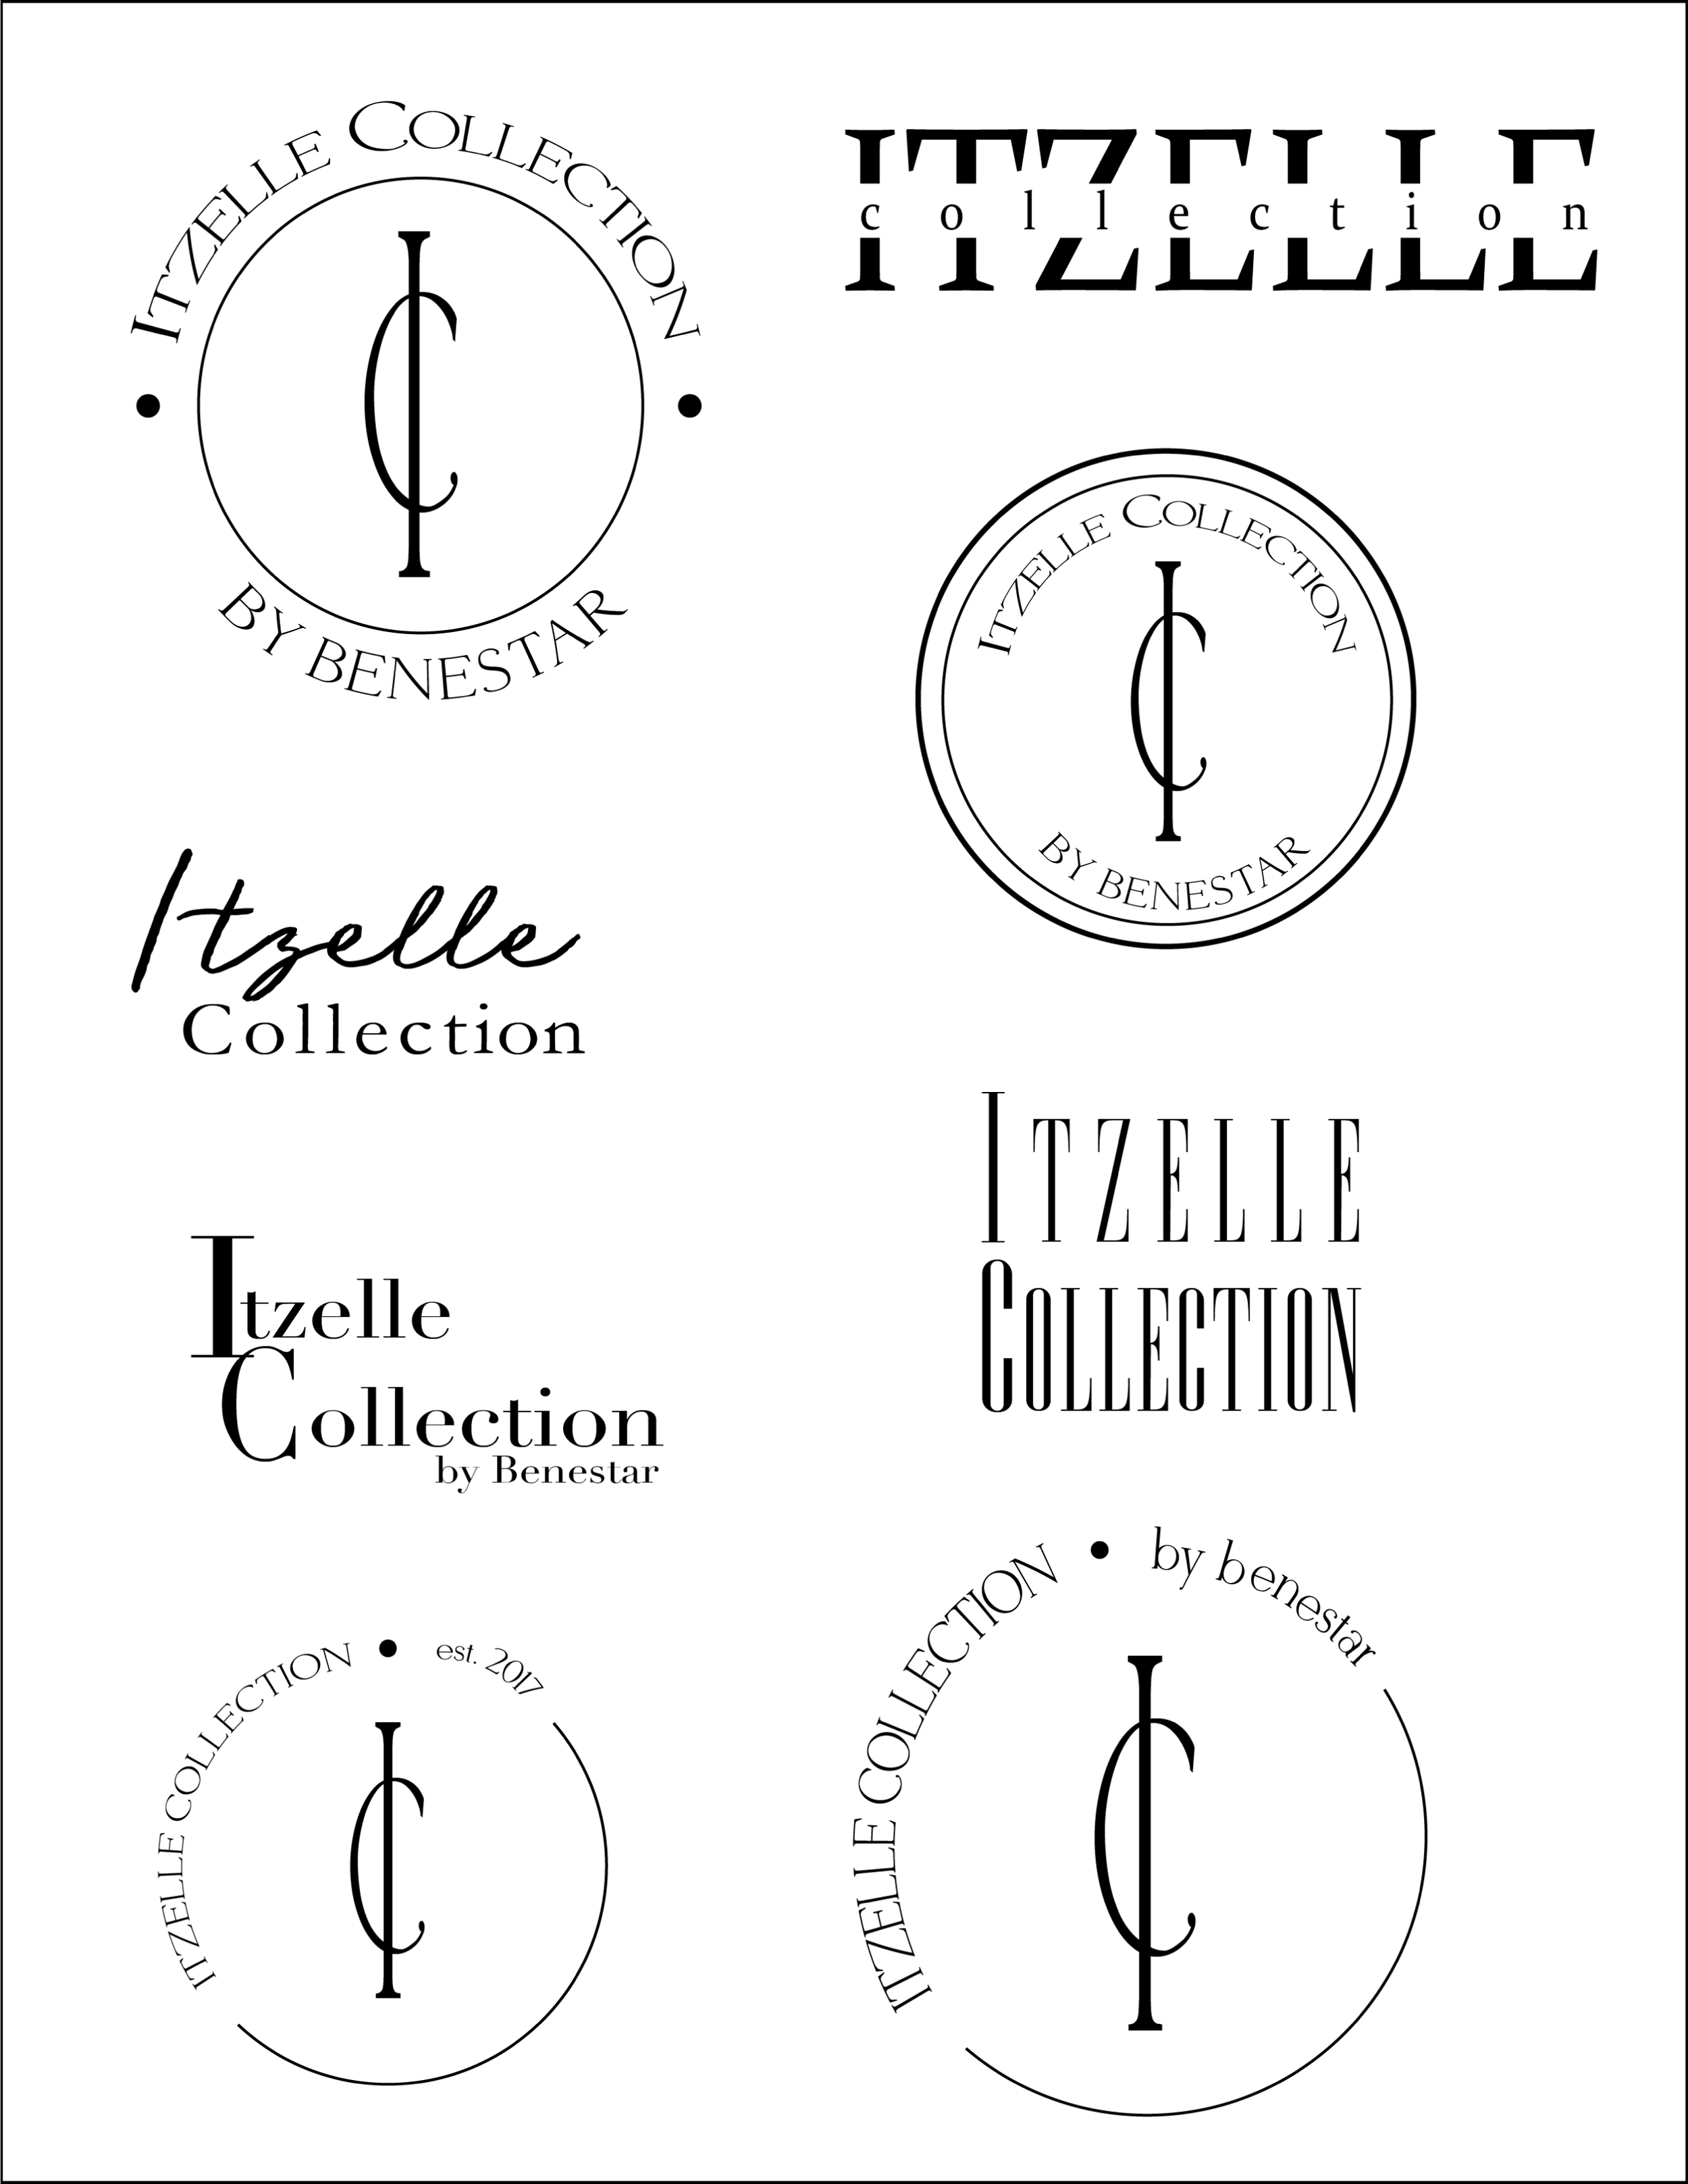 Itzelle Collection Logos - Logo sheet used at the beginning of the branding process